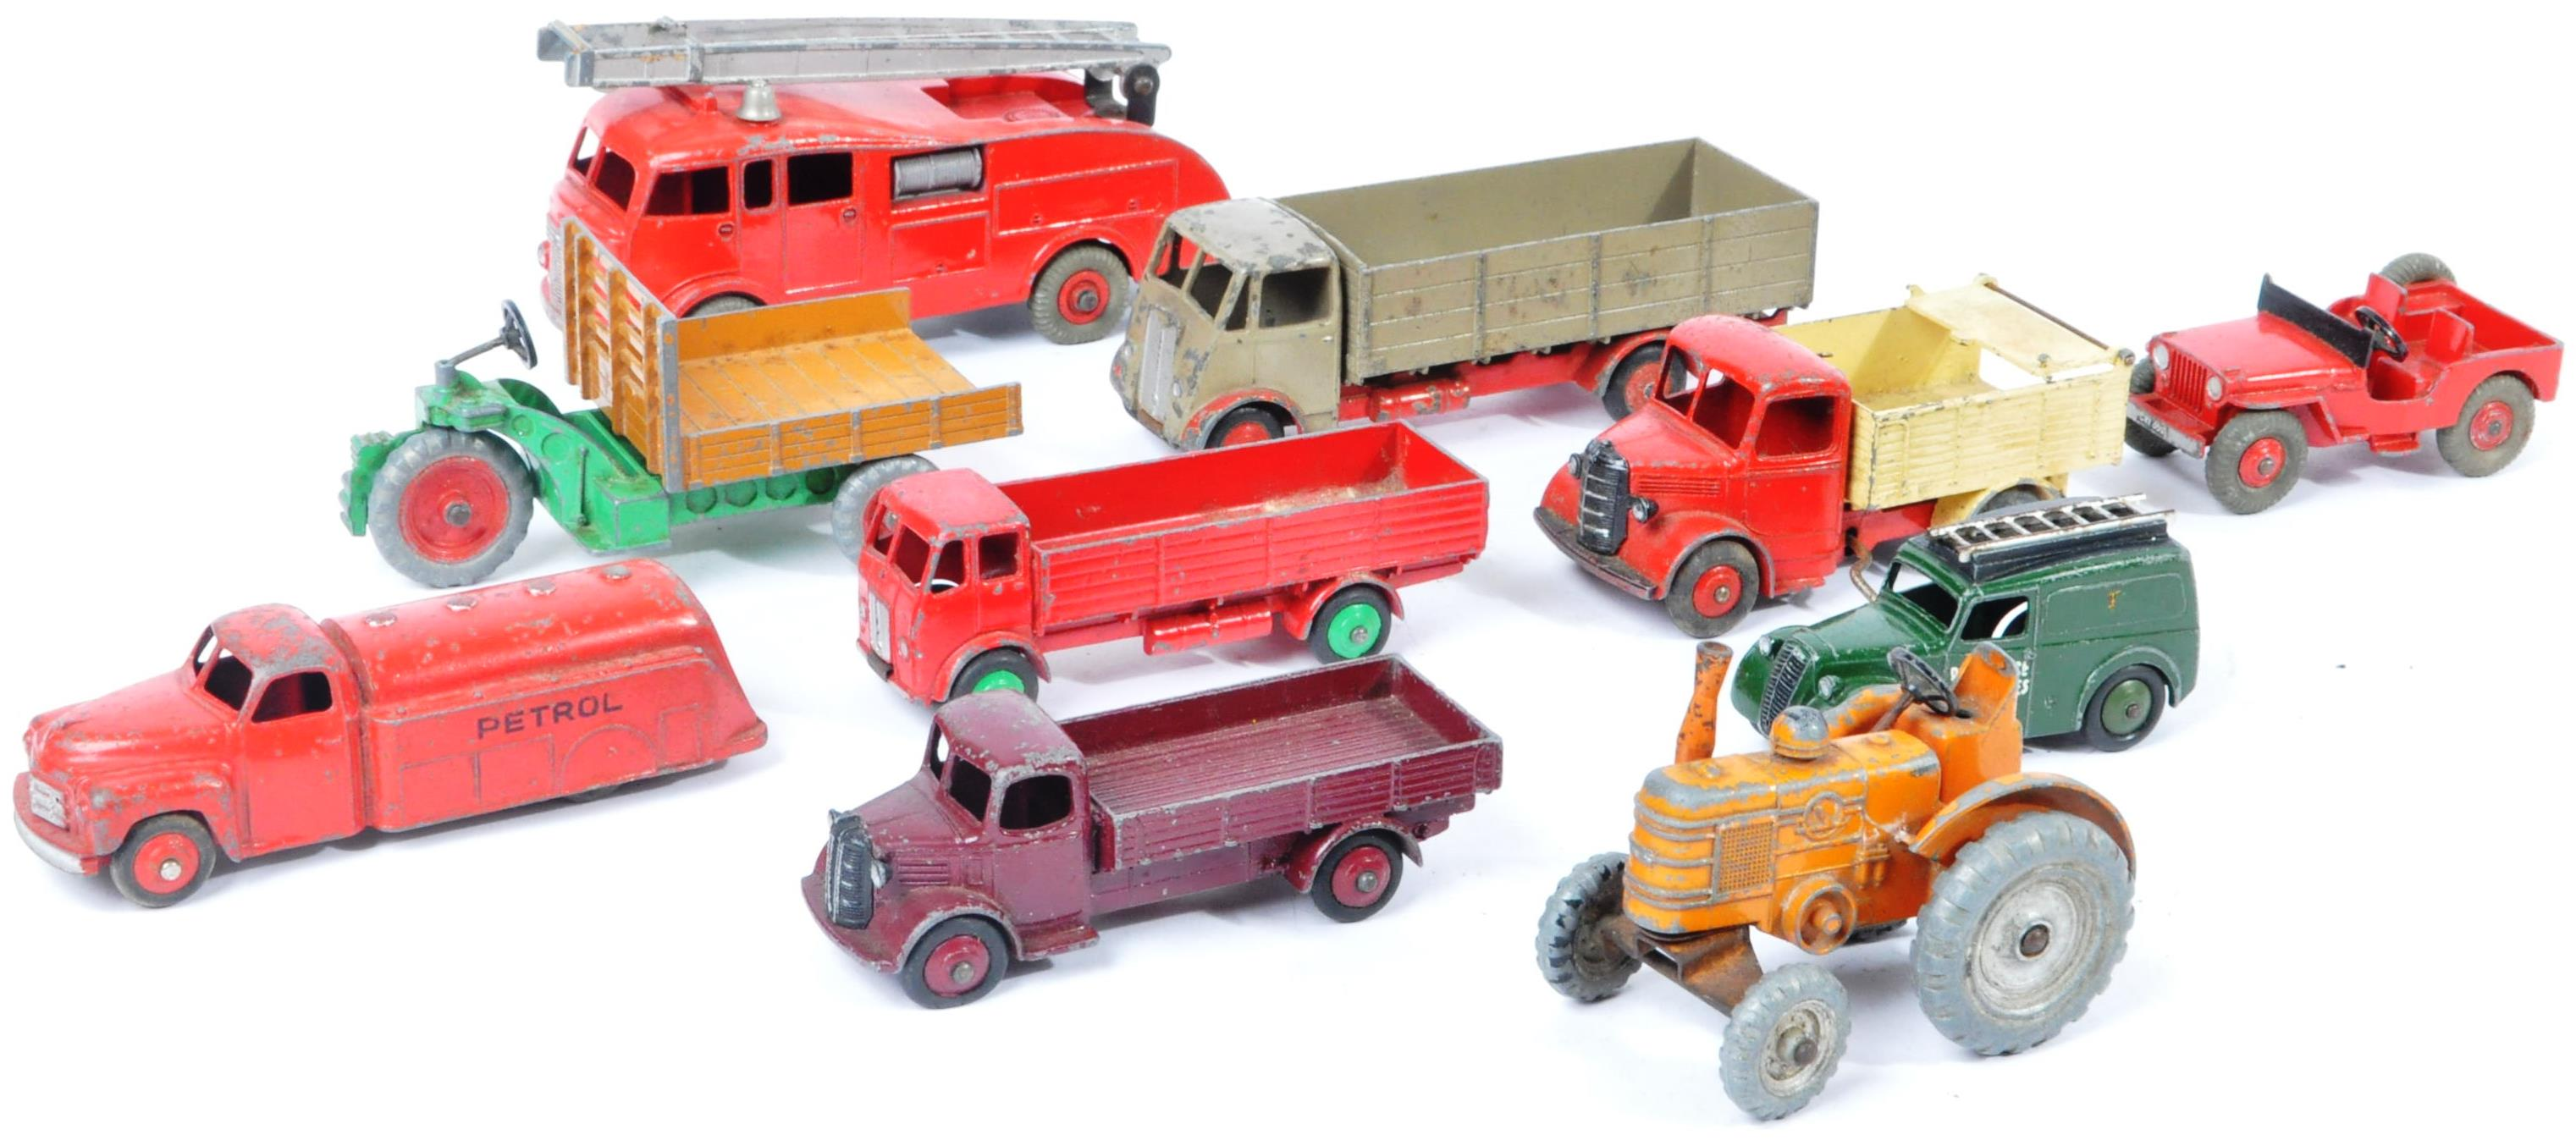 COLLECTION OF X10 VINTAGE DINKY TOYS DIECAST MODEL TRUCKS - Image 8 of 14